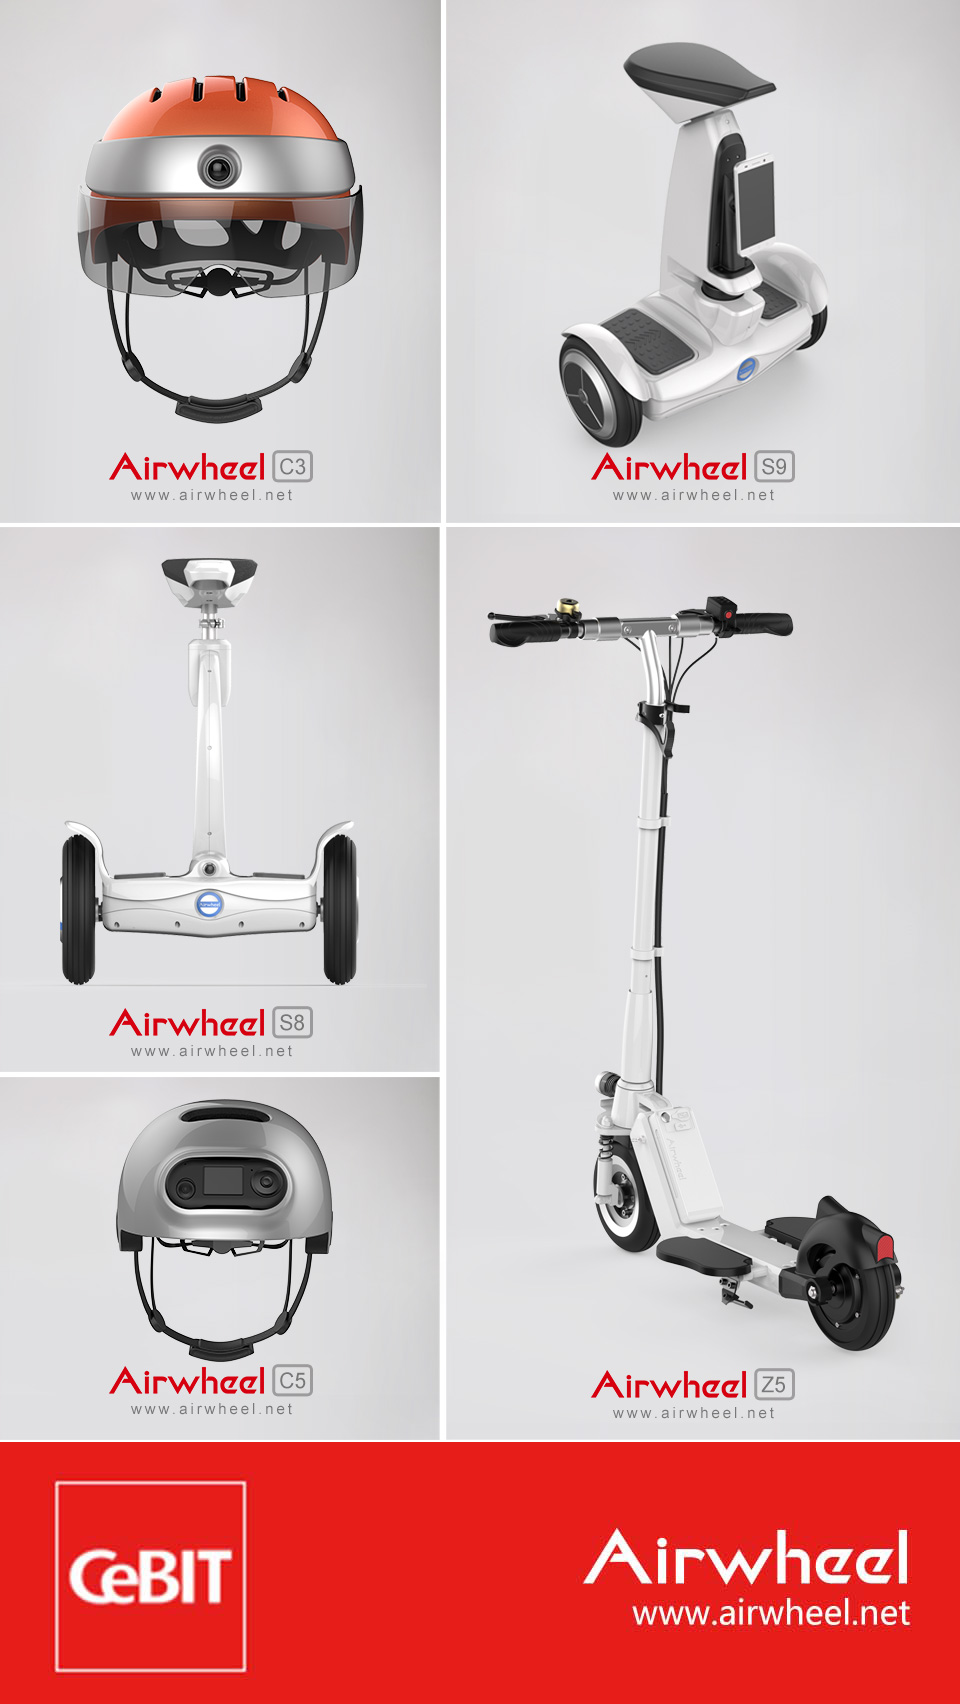 Airwheel new products